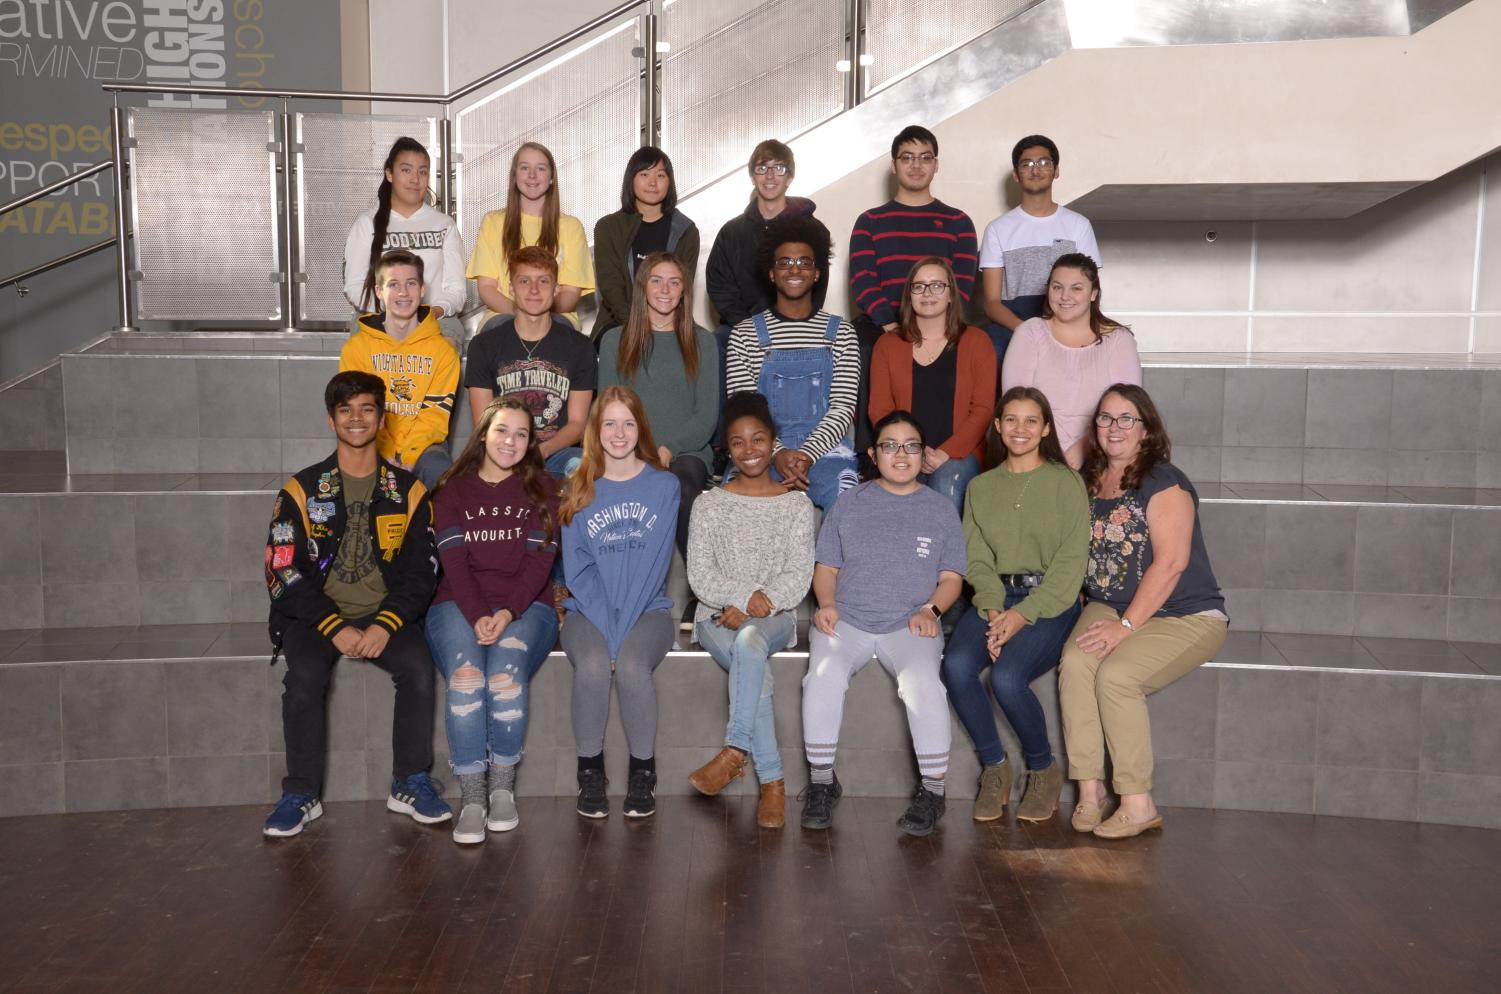 The Expanding Horizon club poses in the Broken Arrow High School lobby during group photo day.